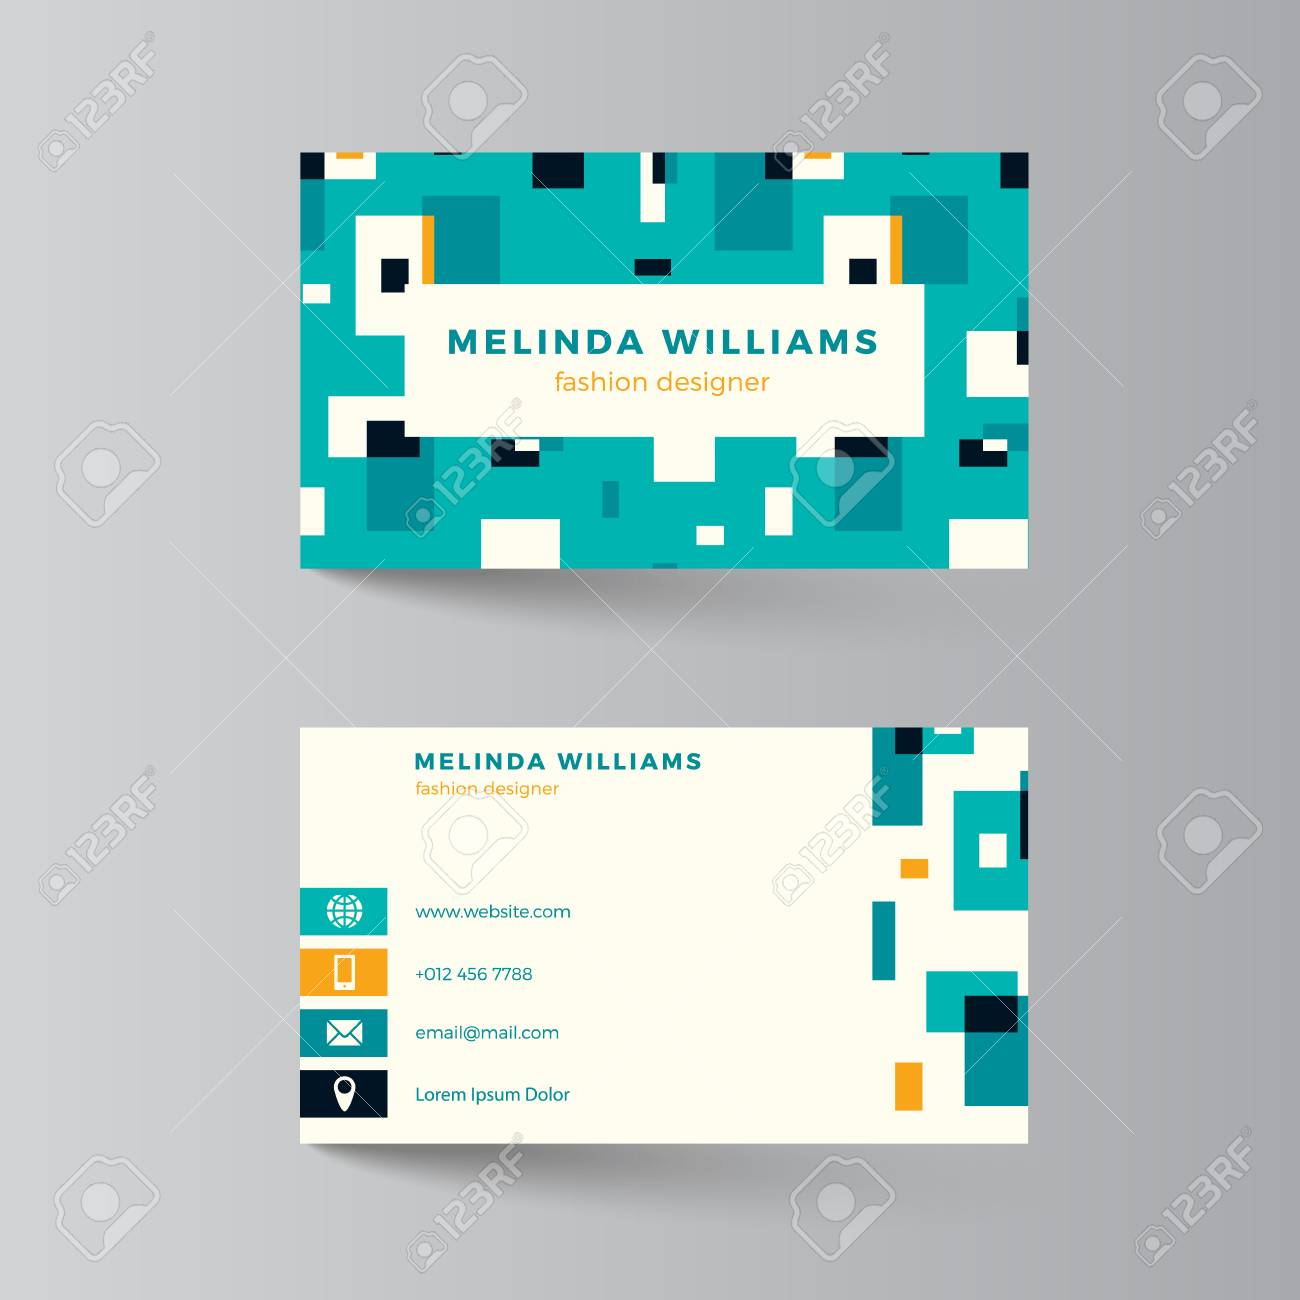 Business Card Layout Vector Illustration Turquoise And Yellow Template Clean Modern